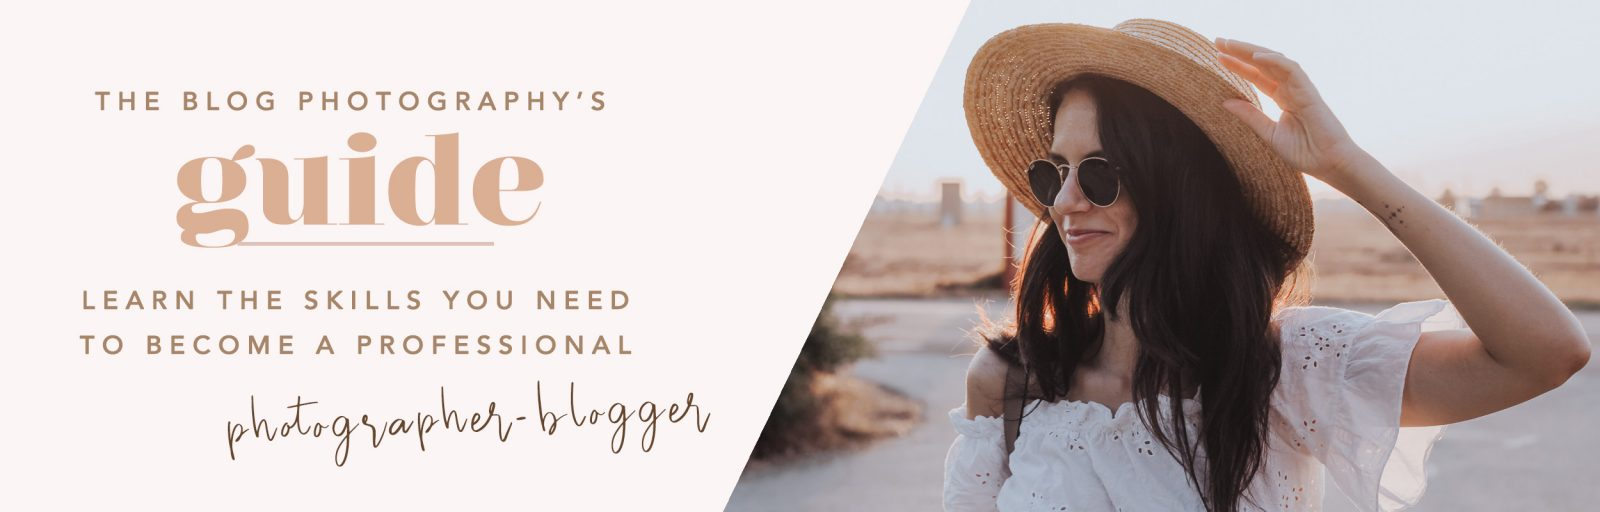 Blog Photography Guide to become a professional blogger photographer